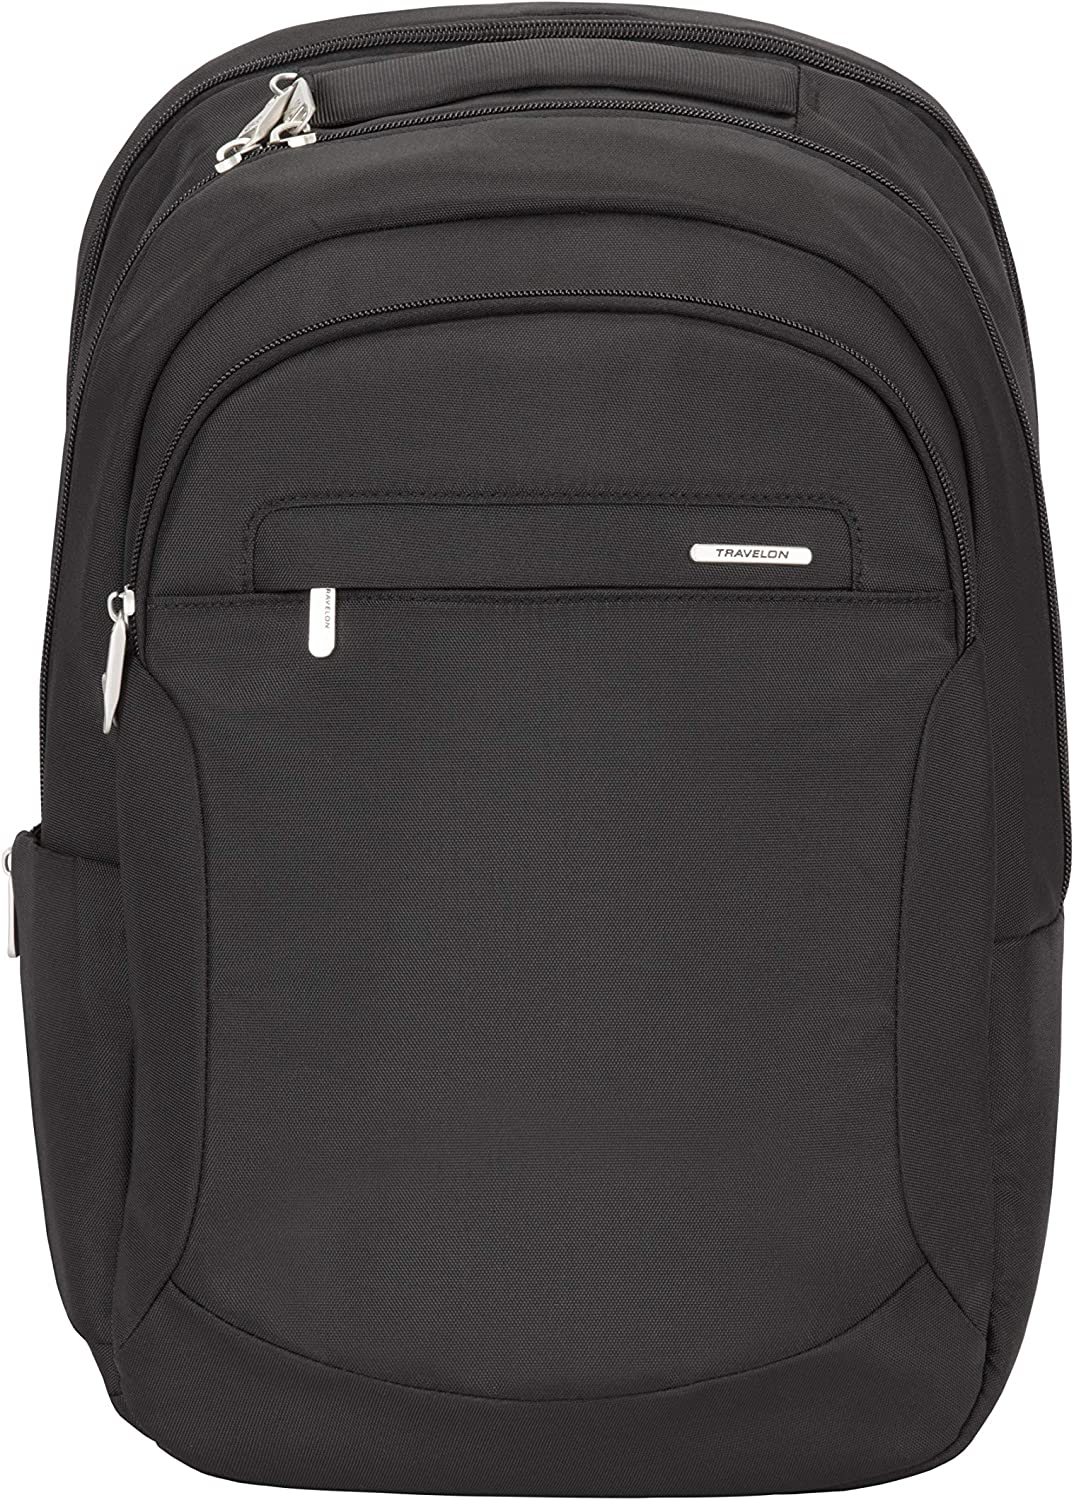 Travelon Anti-Theft Classic Large Backpack, Black, One Size